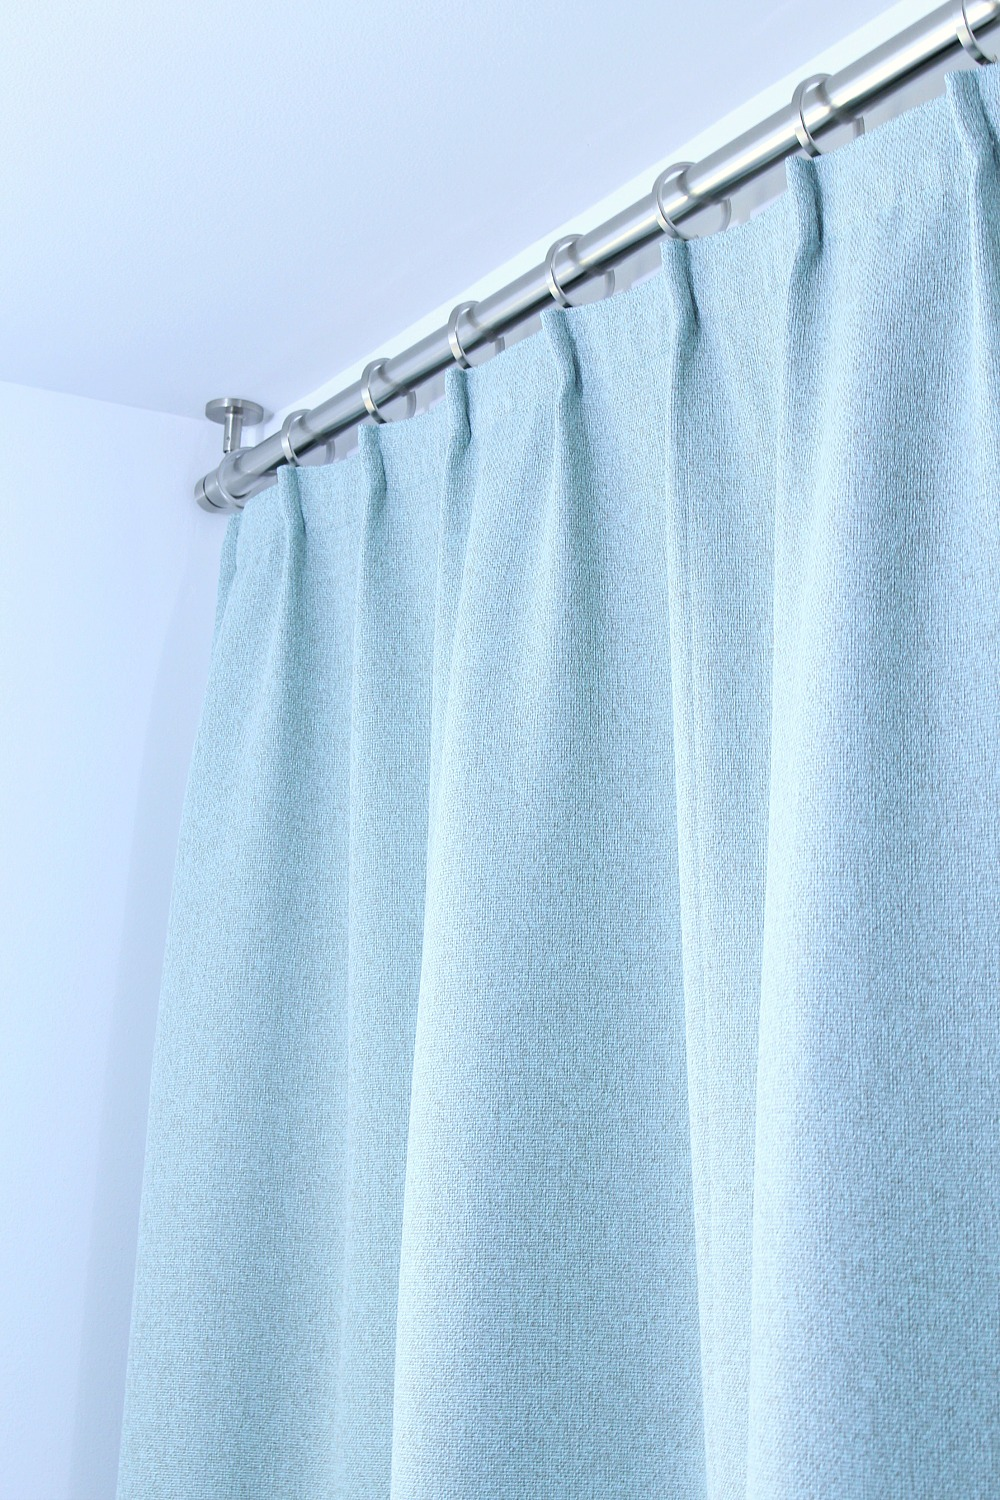 image that curtains shower to home hooks modern wash hot of decor easy curtain